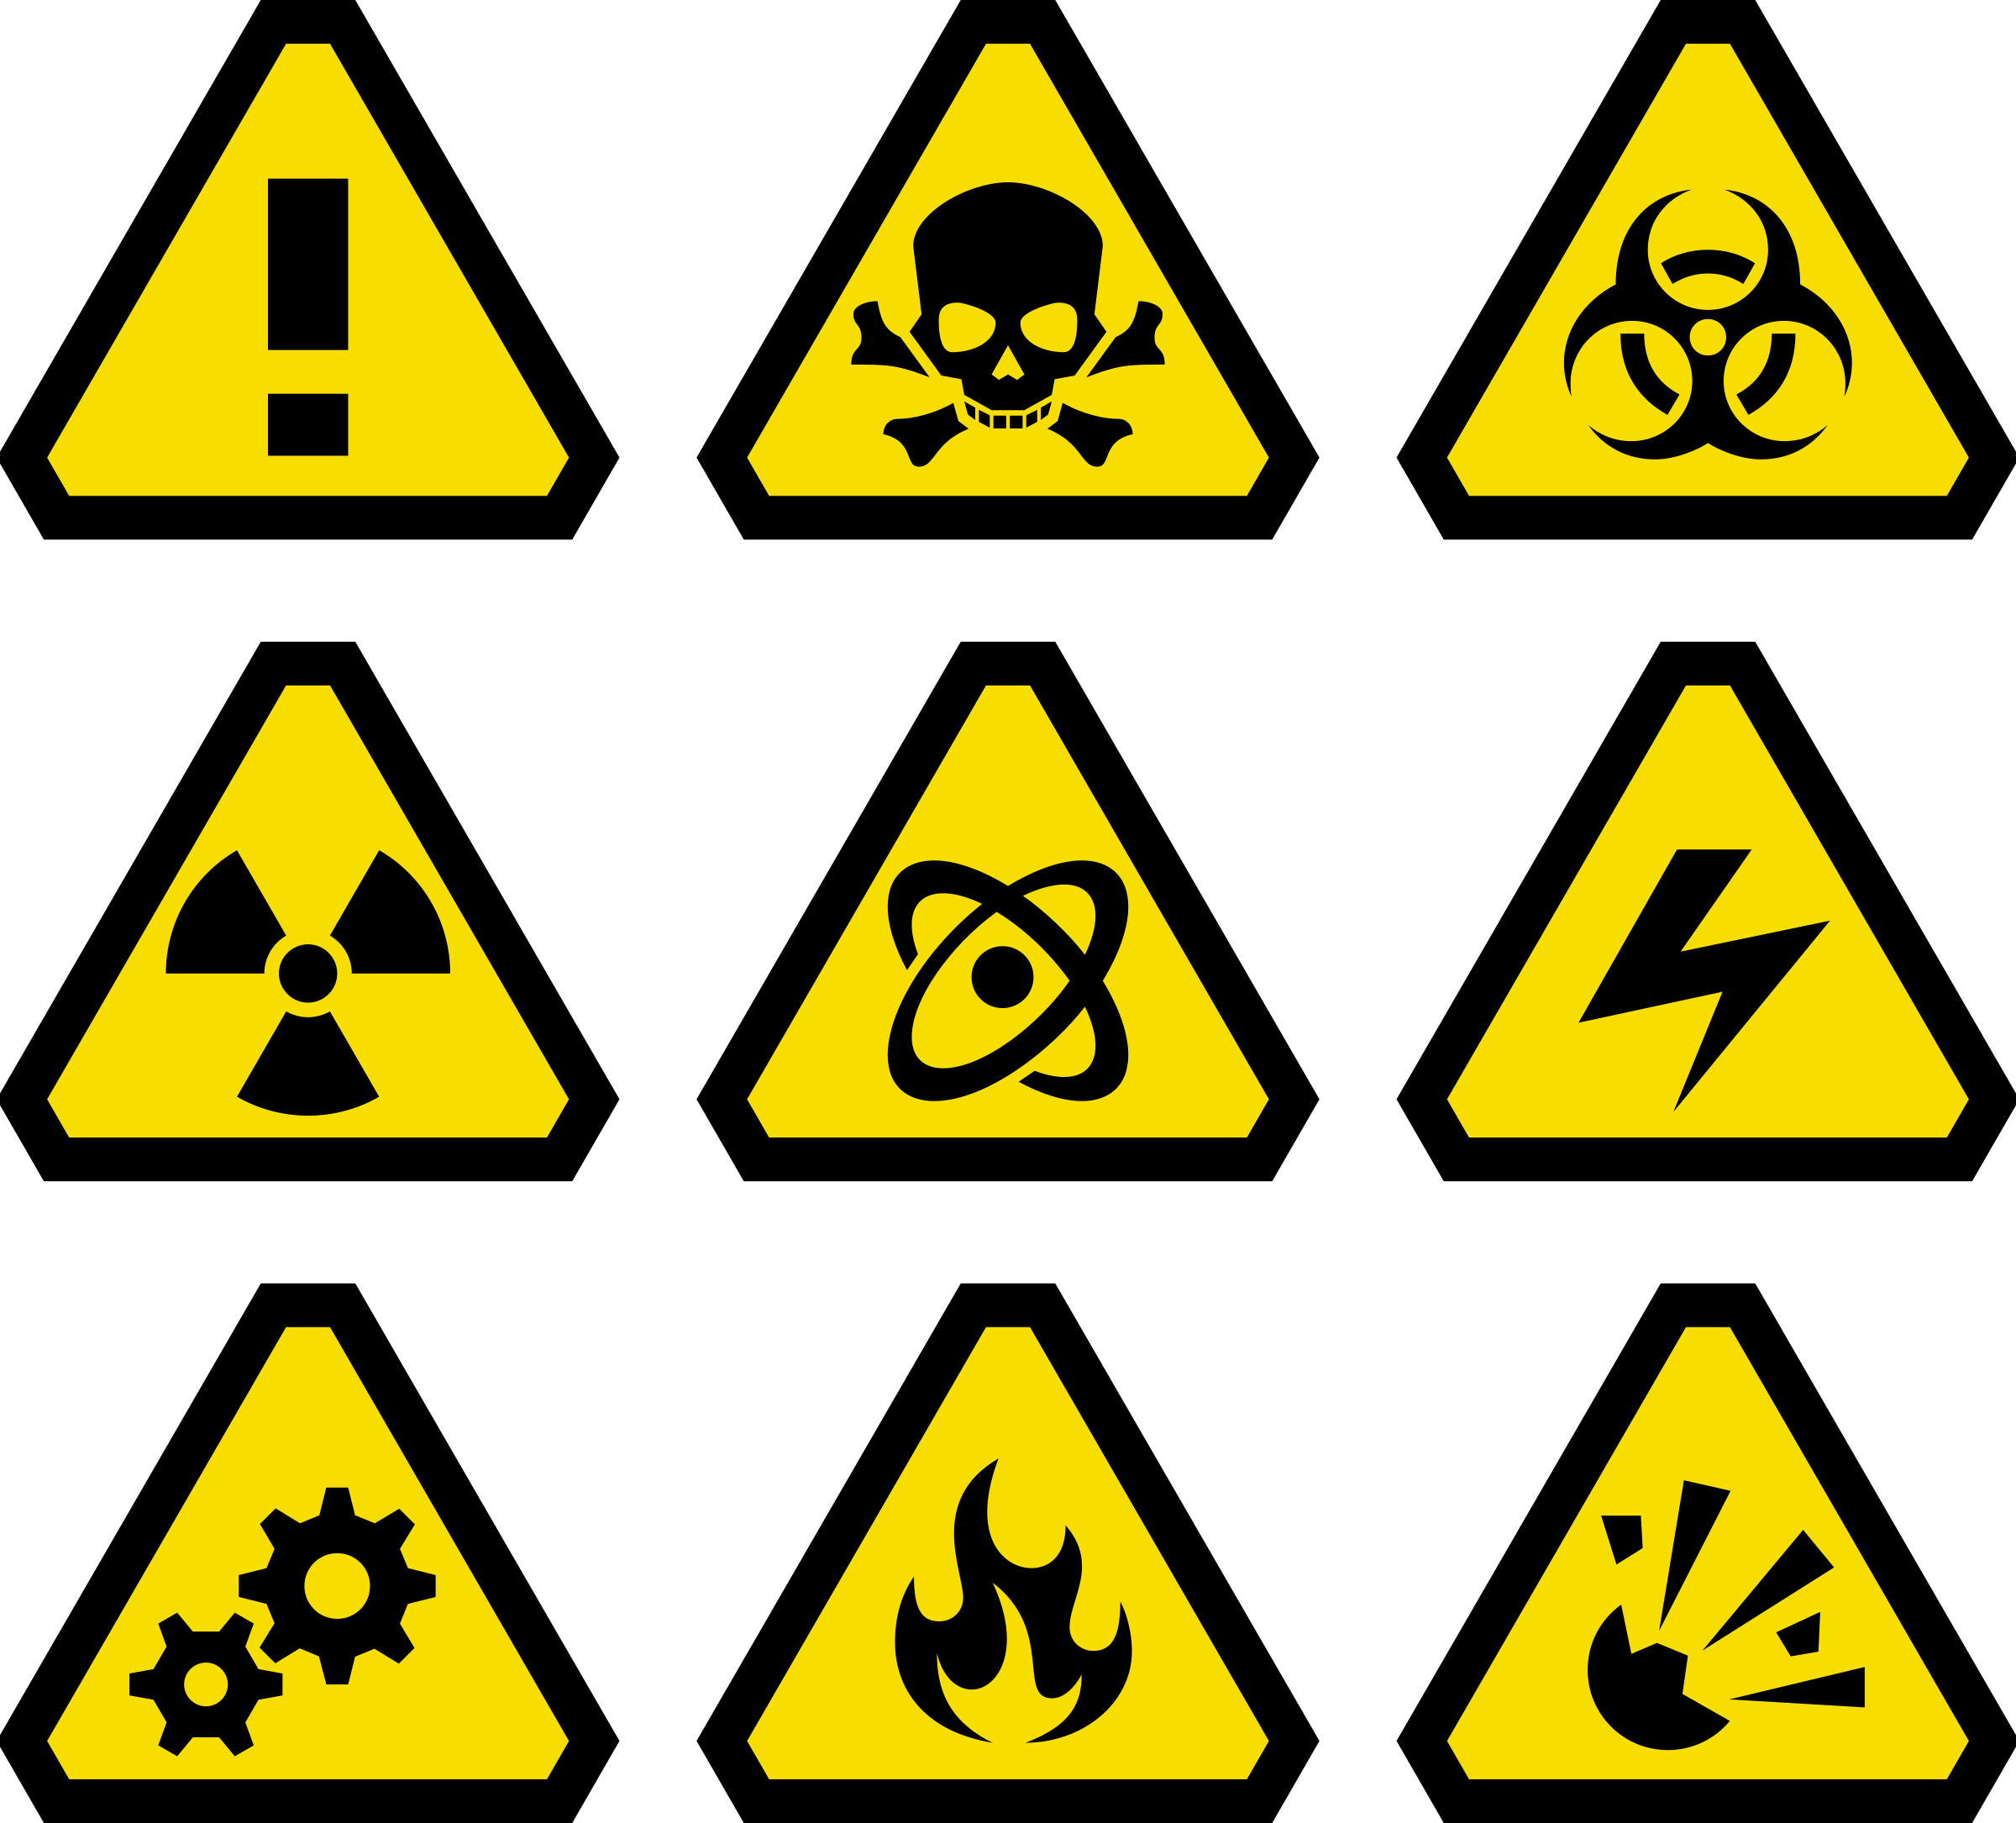 Triangular clipart warning. Danger sign pencil and